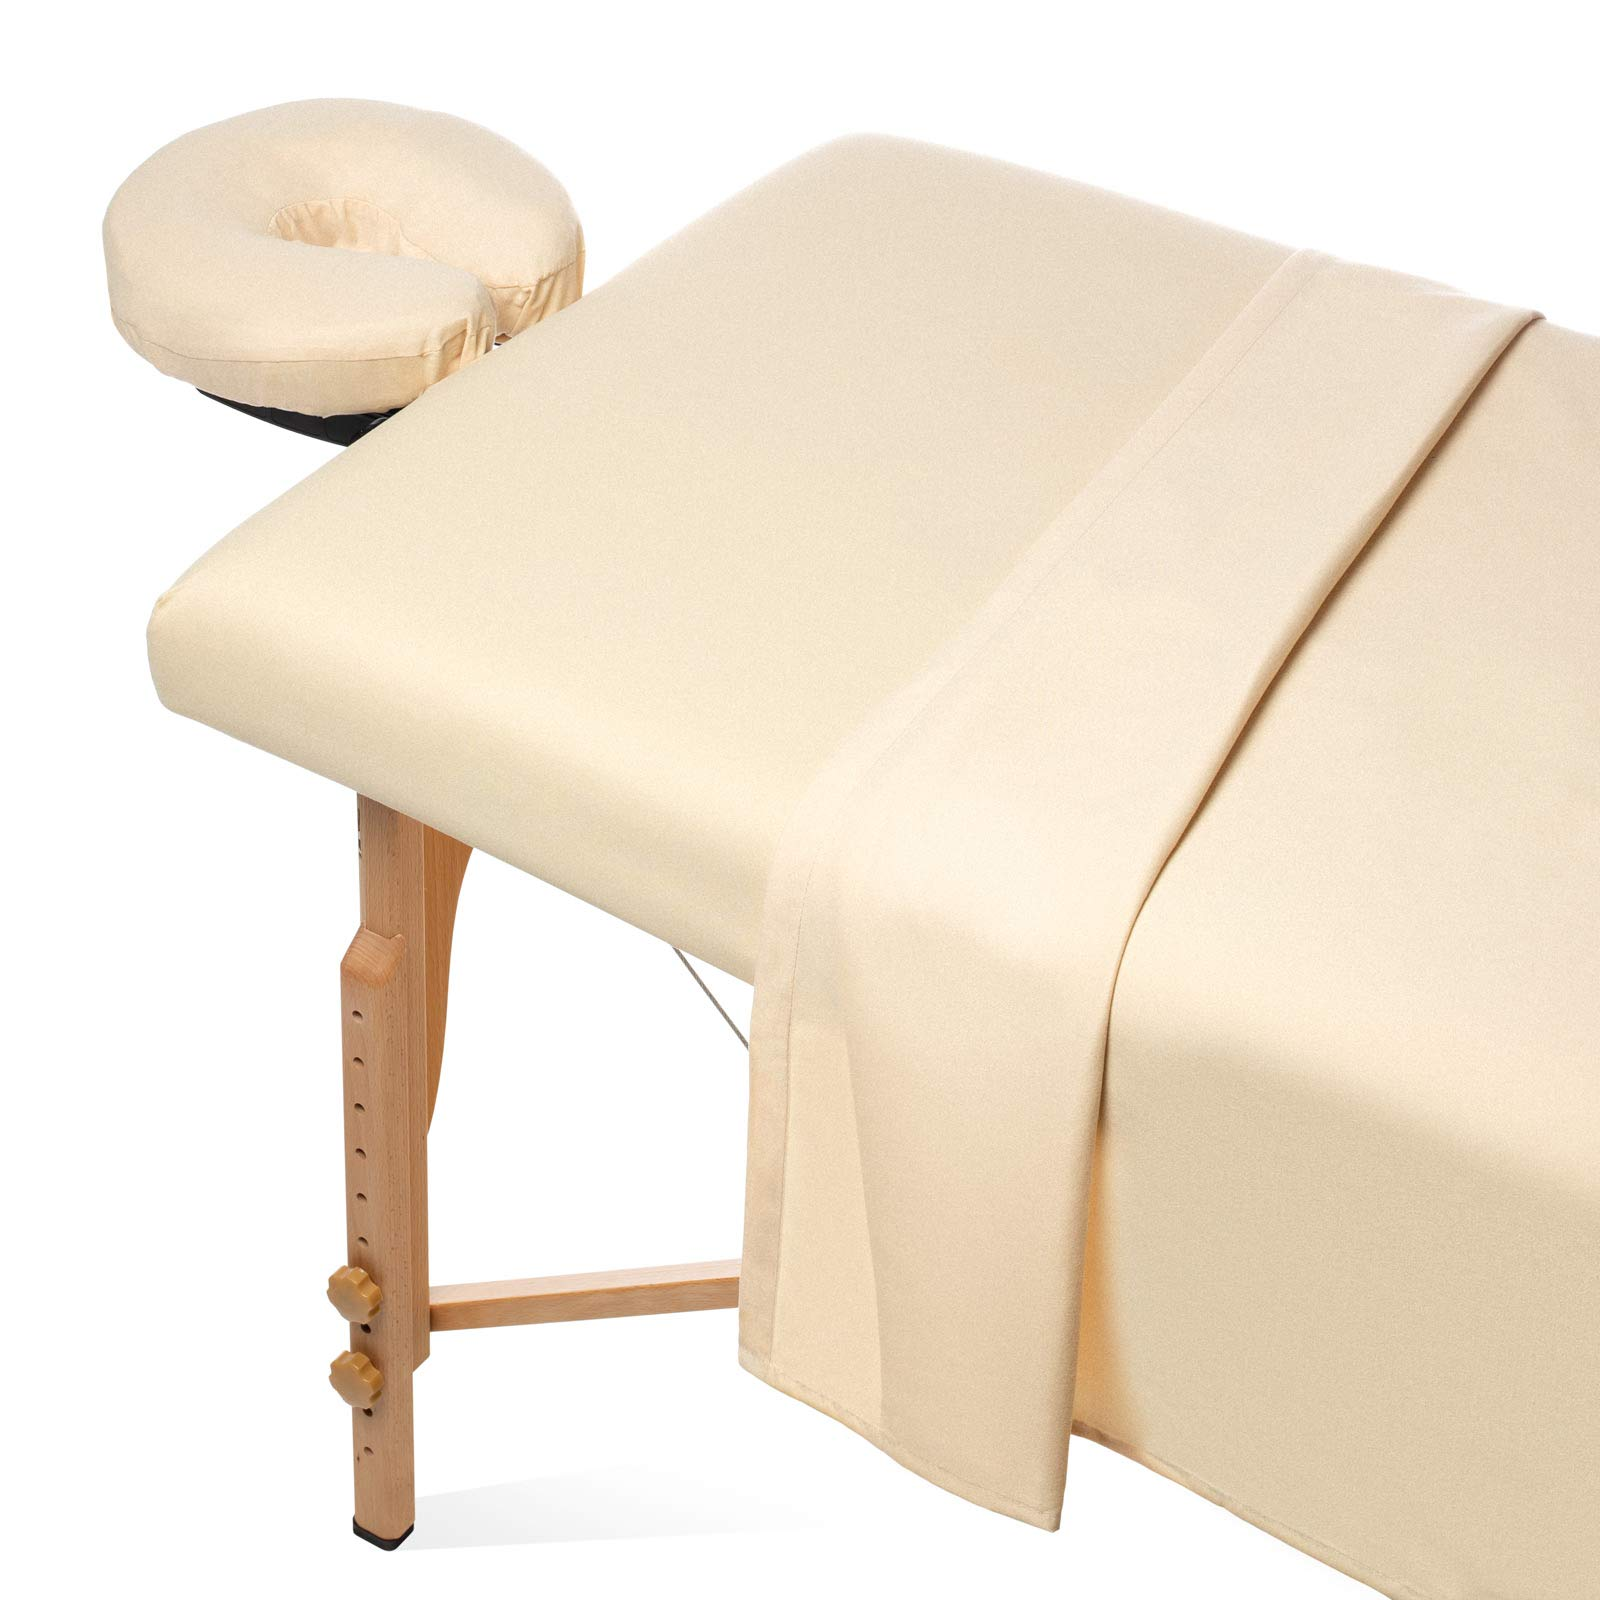 Saloniture 3 Piece Flannel Massage Table